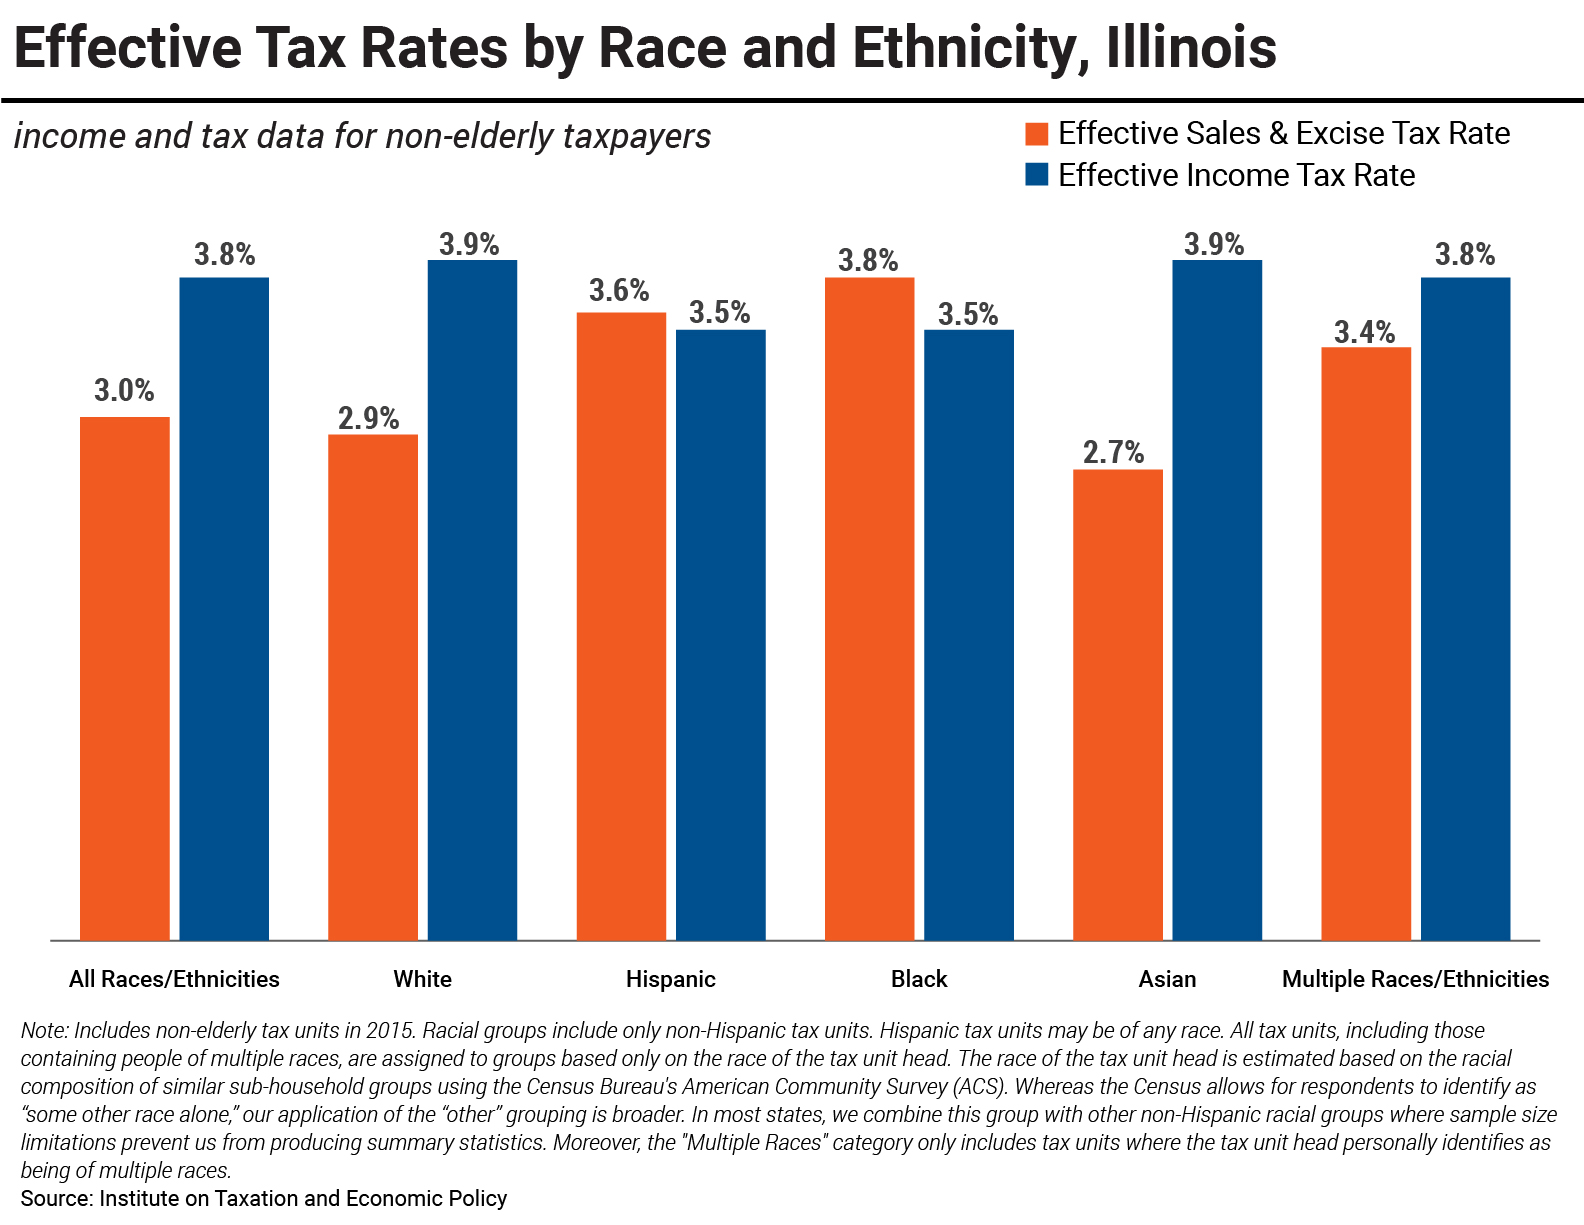 State Tax Codes & Racial Inequities: An Illinois Case Study